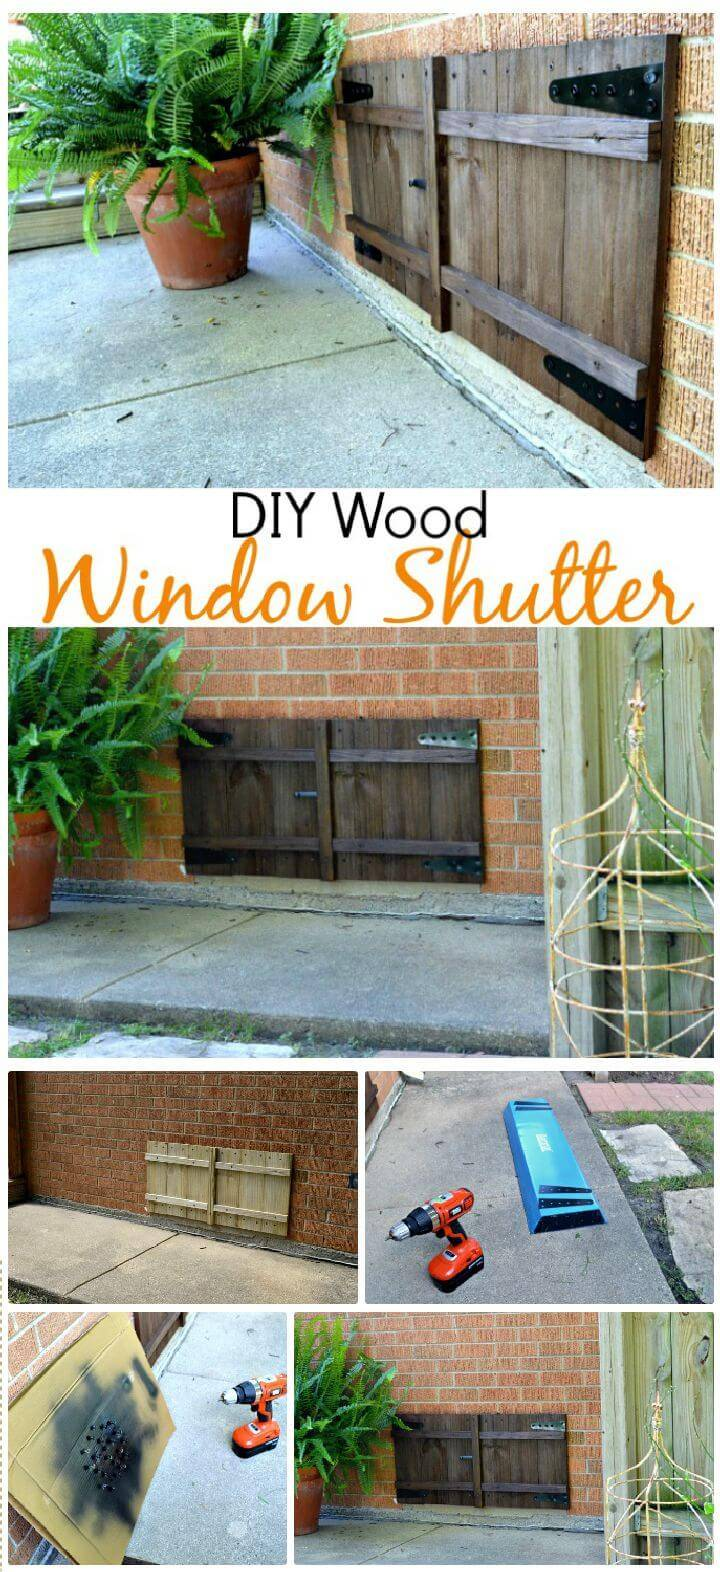 DIY New and Improved Window Shutter